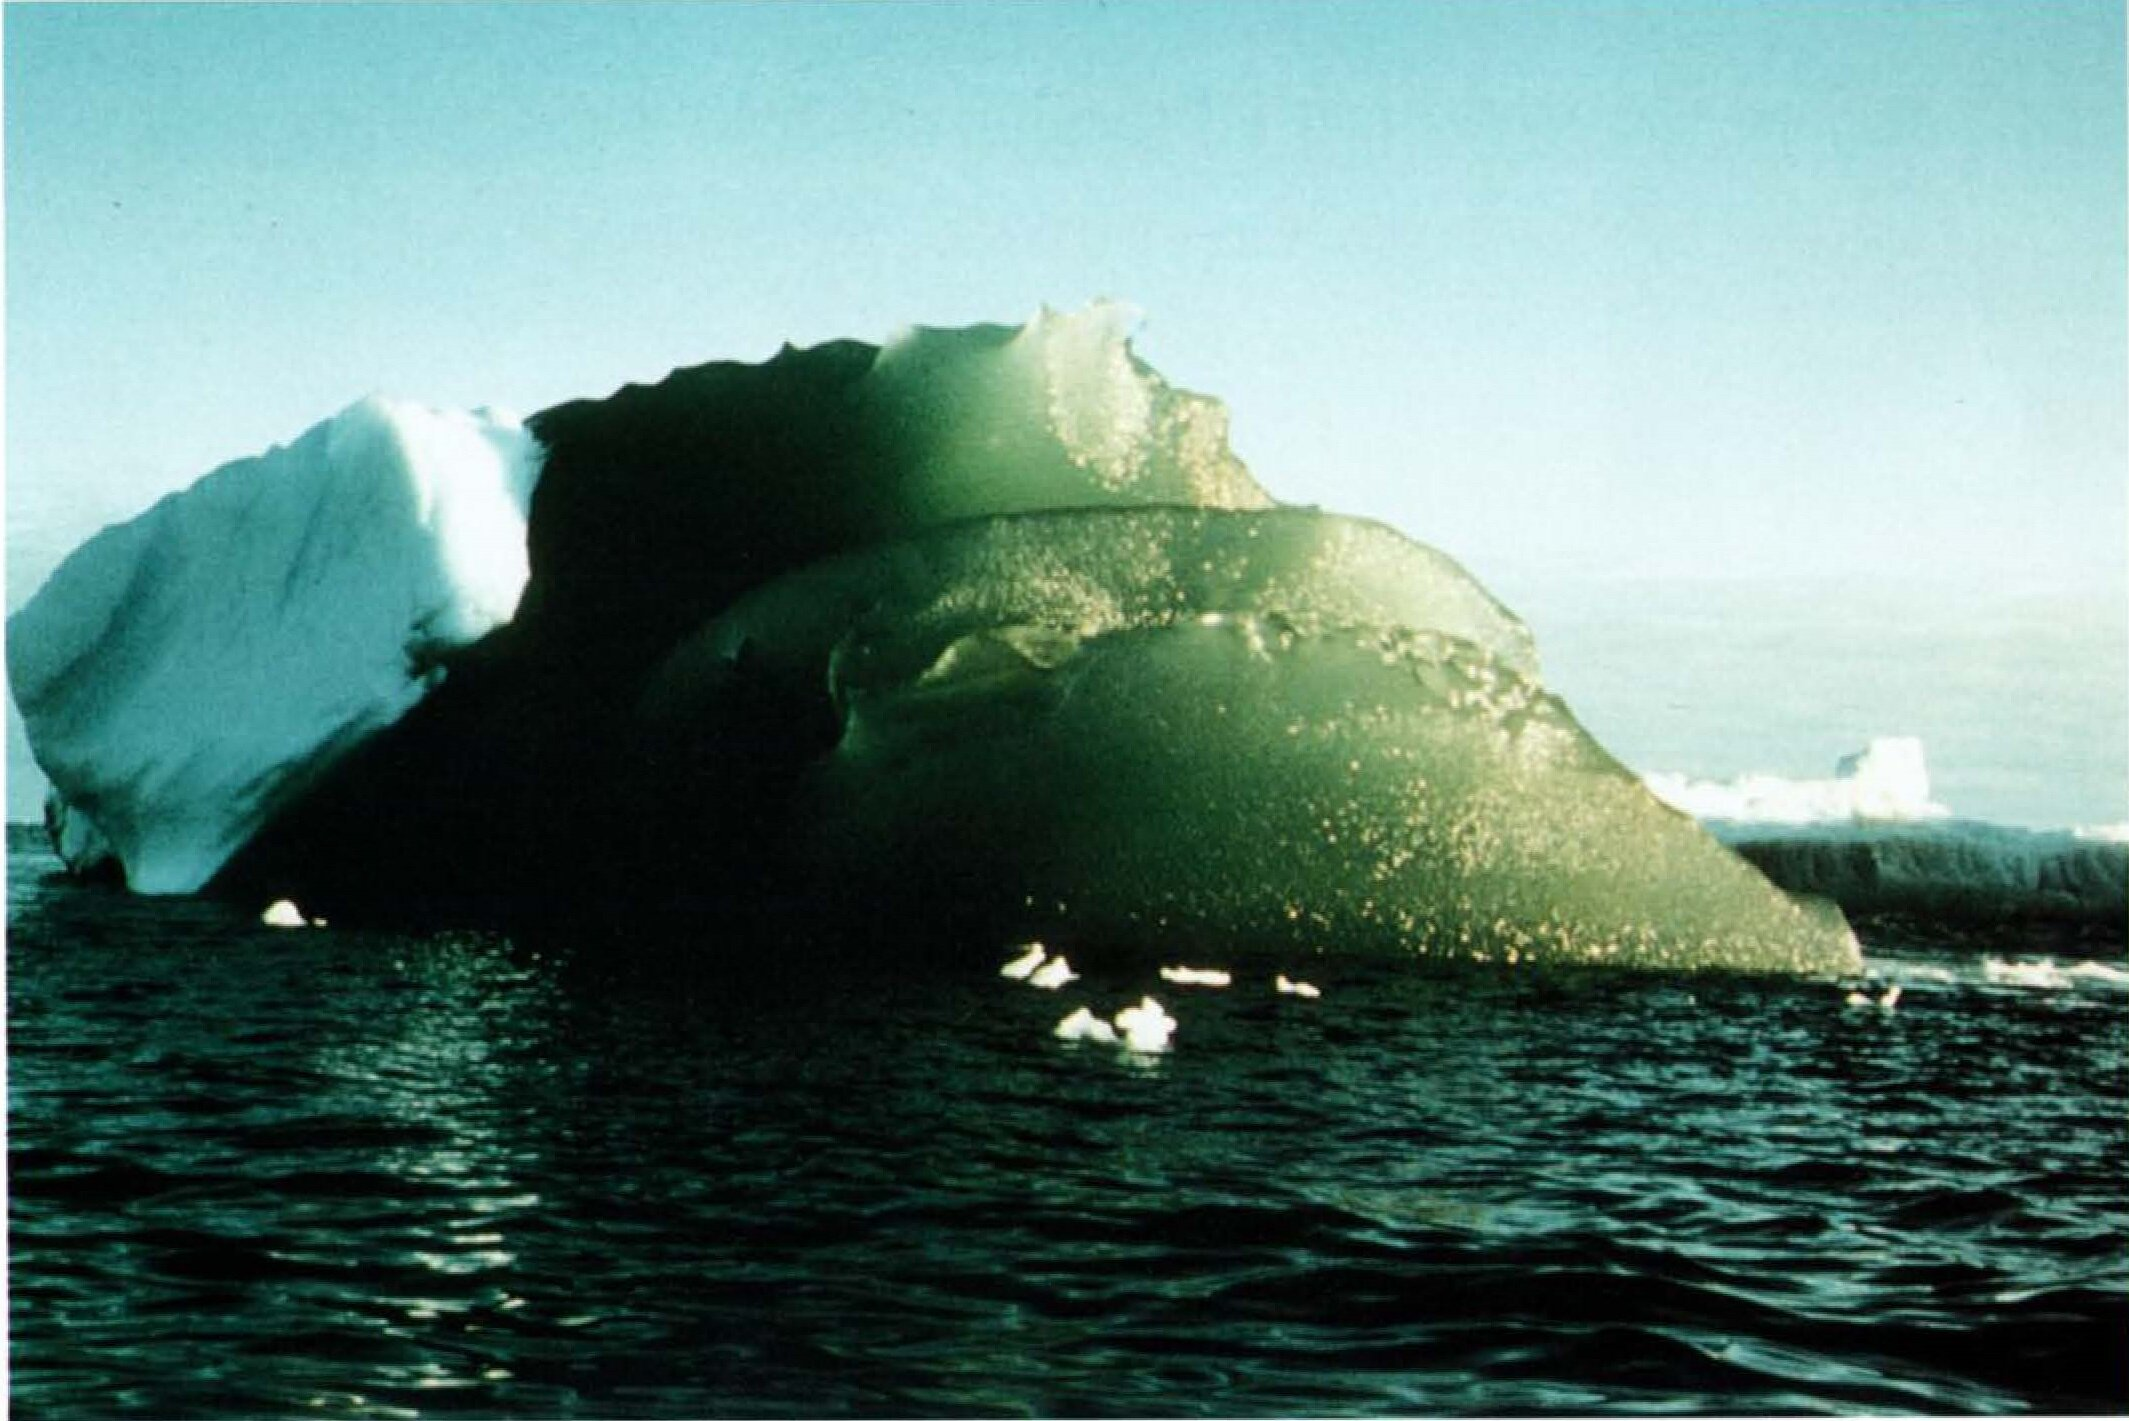 Why Are There Green Icebergs in Antarctica?